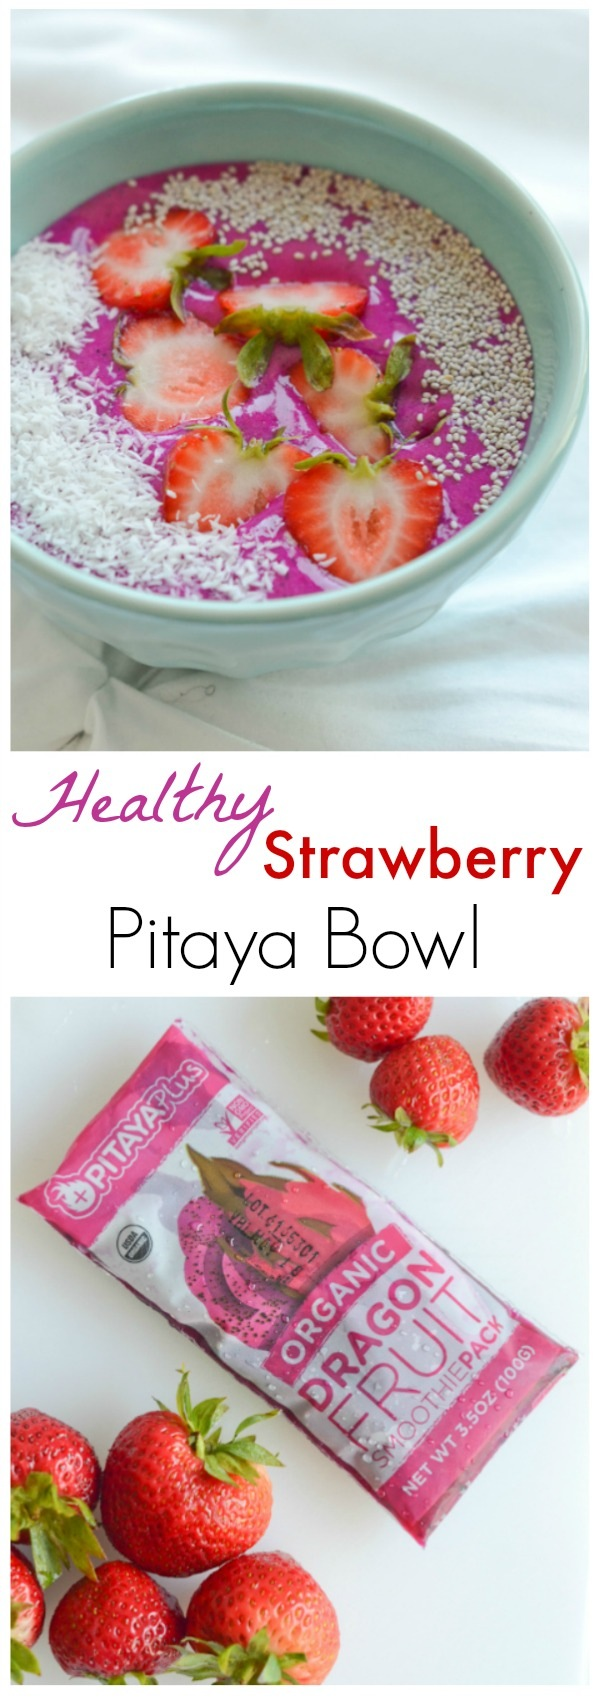 Healthy Strawberry Pitaya Bowl Recipe